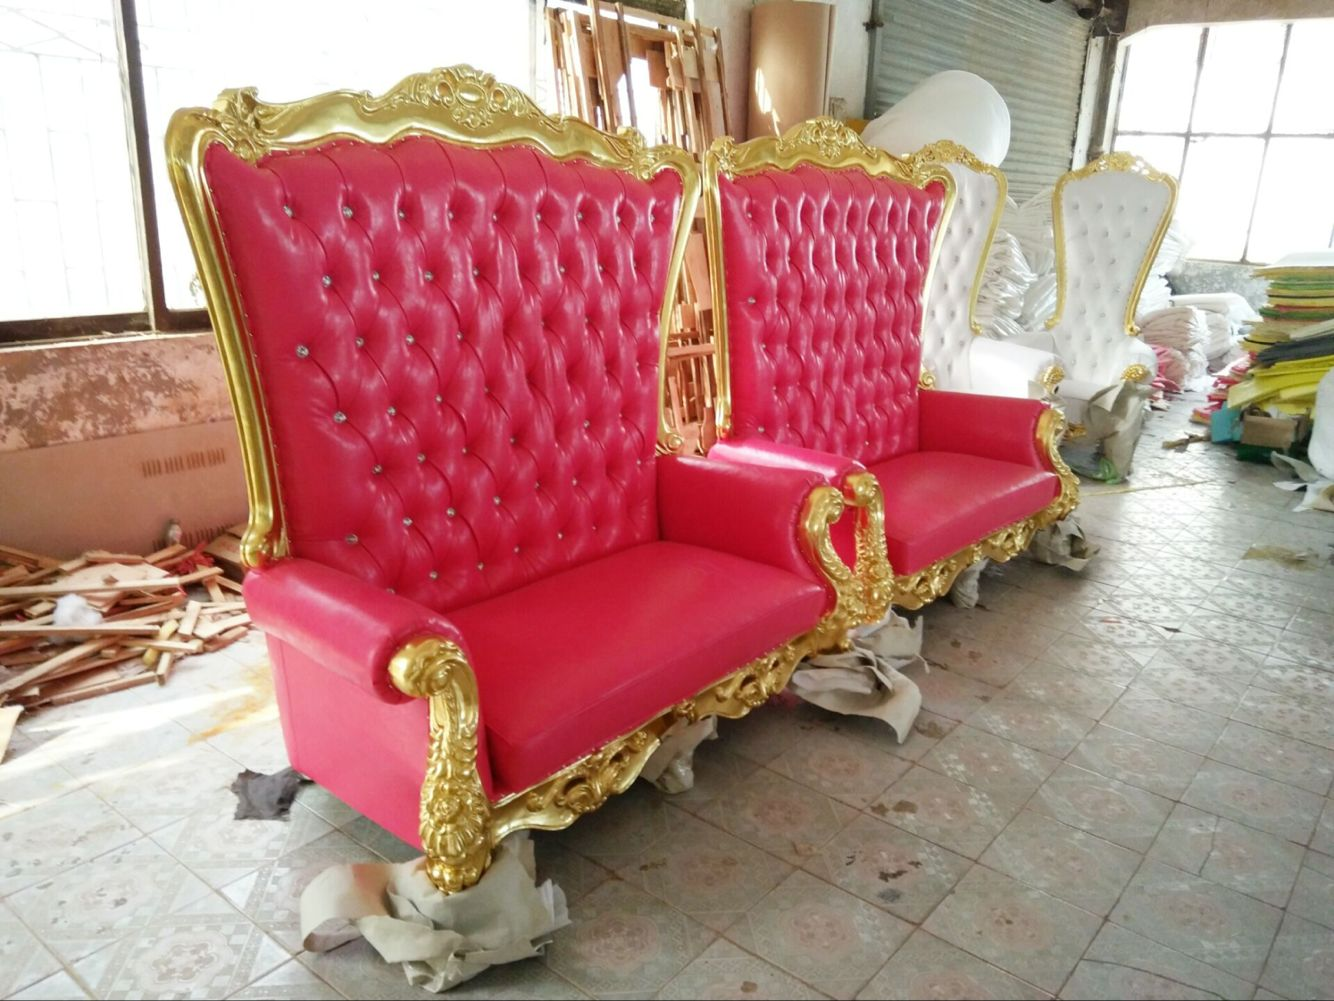 OEM China Church Pews For Sale Near Me -